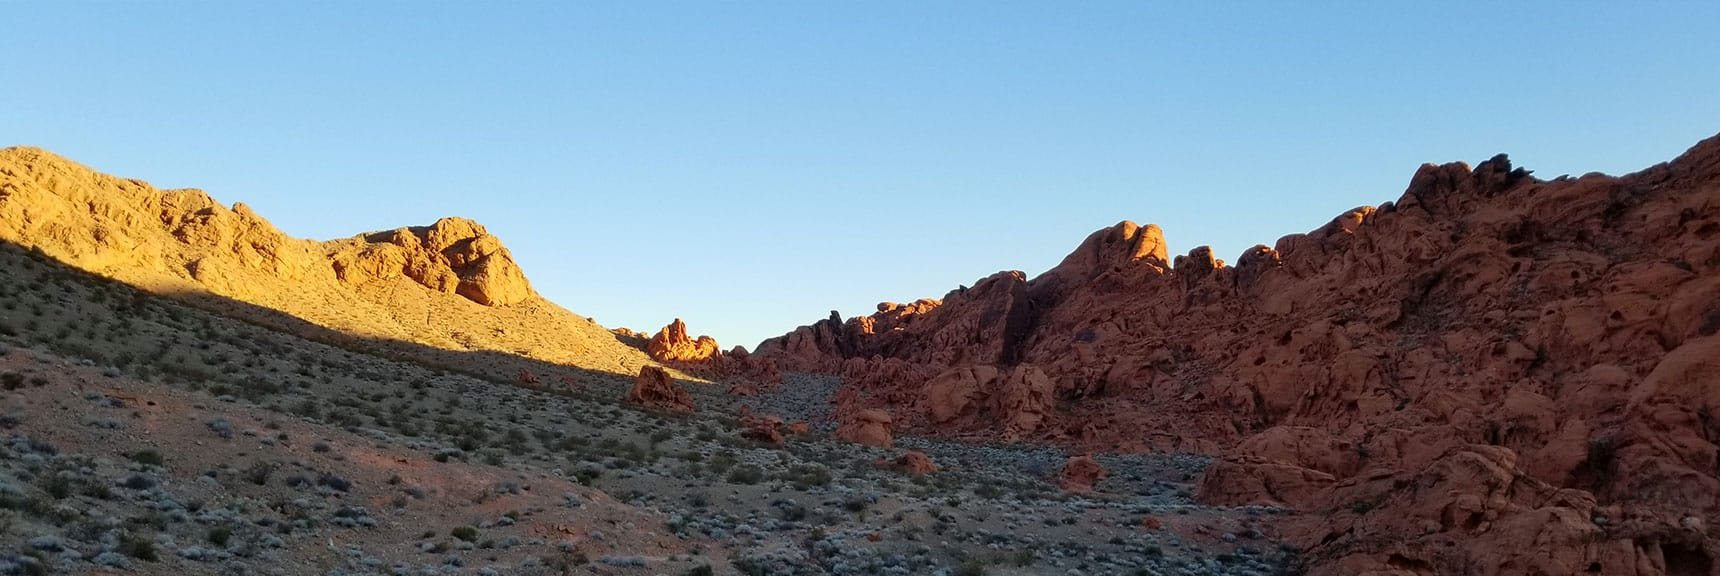 Ascending North Toward the Pass on Prospect Trail in Valley of Fire State Park, Nevada